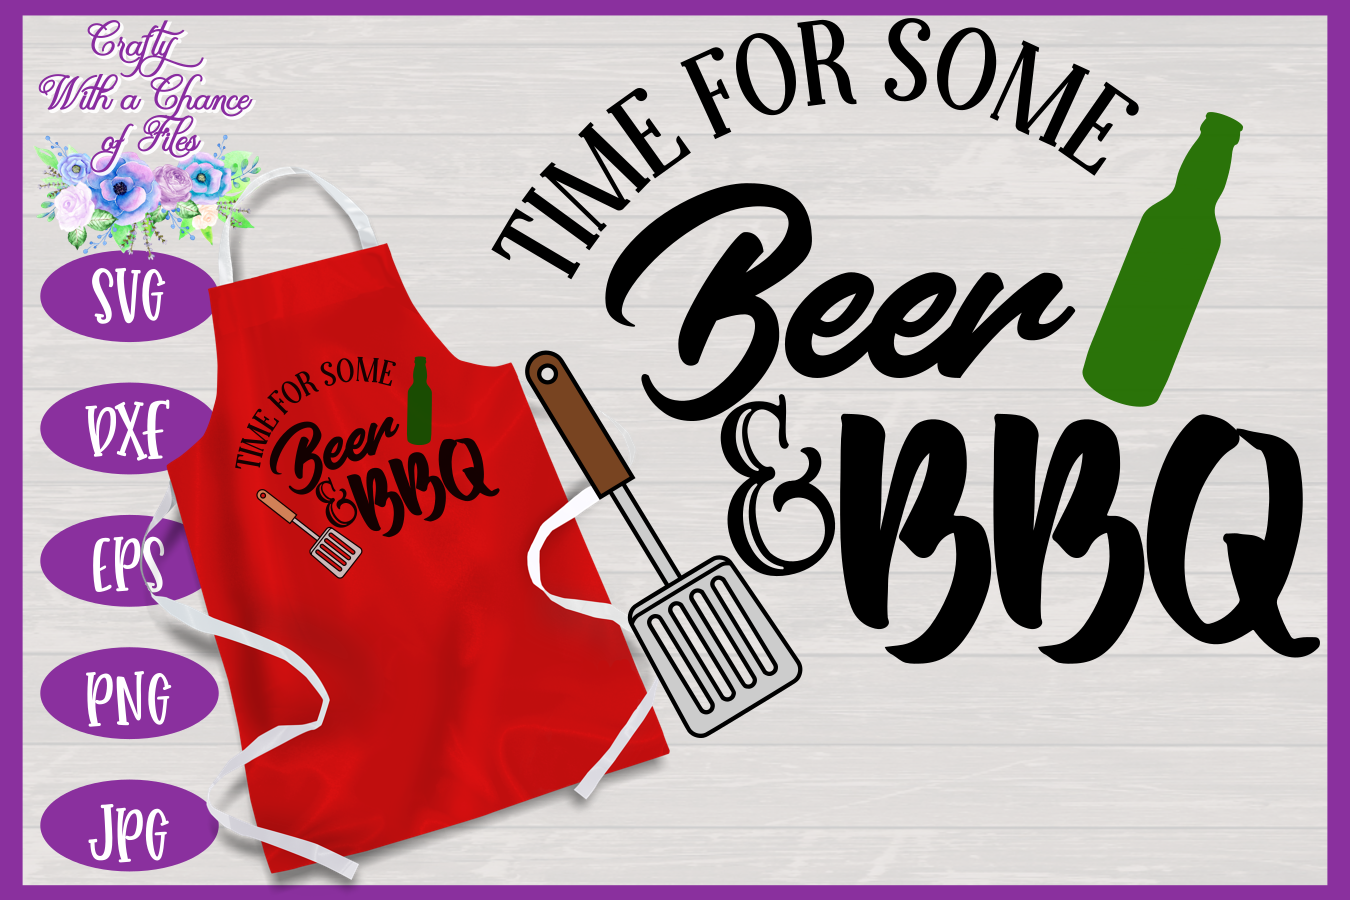 BBQ Grill Apron Bundle | Funny SVG Bundle example image 5